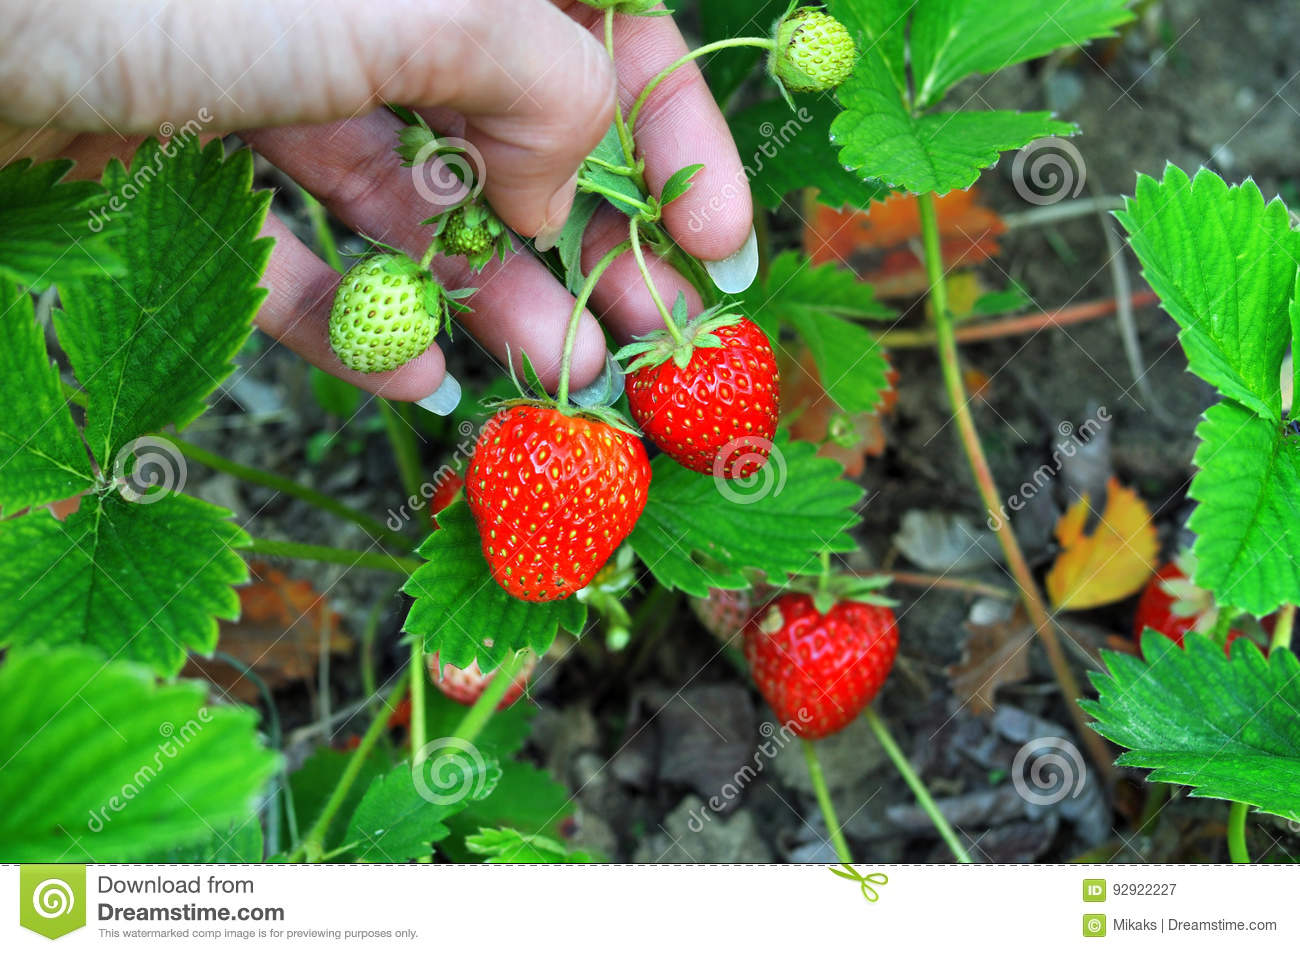 Woman hand with fresh strawberries collected in the garden. Fresh organic strawberries growing on the field.